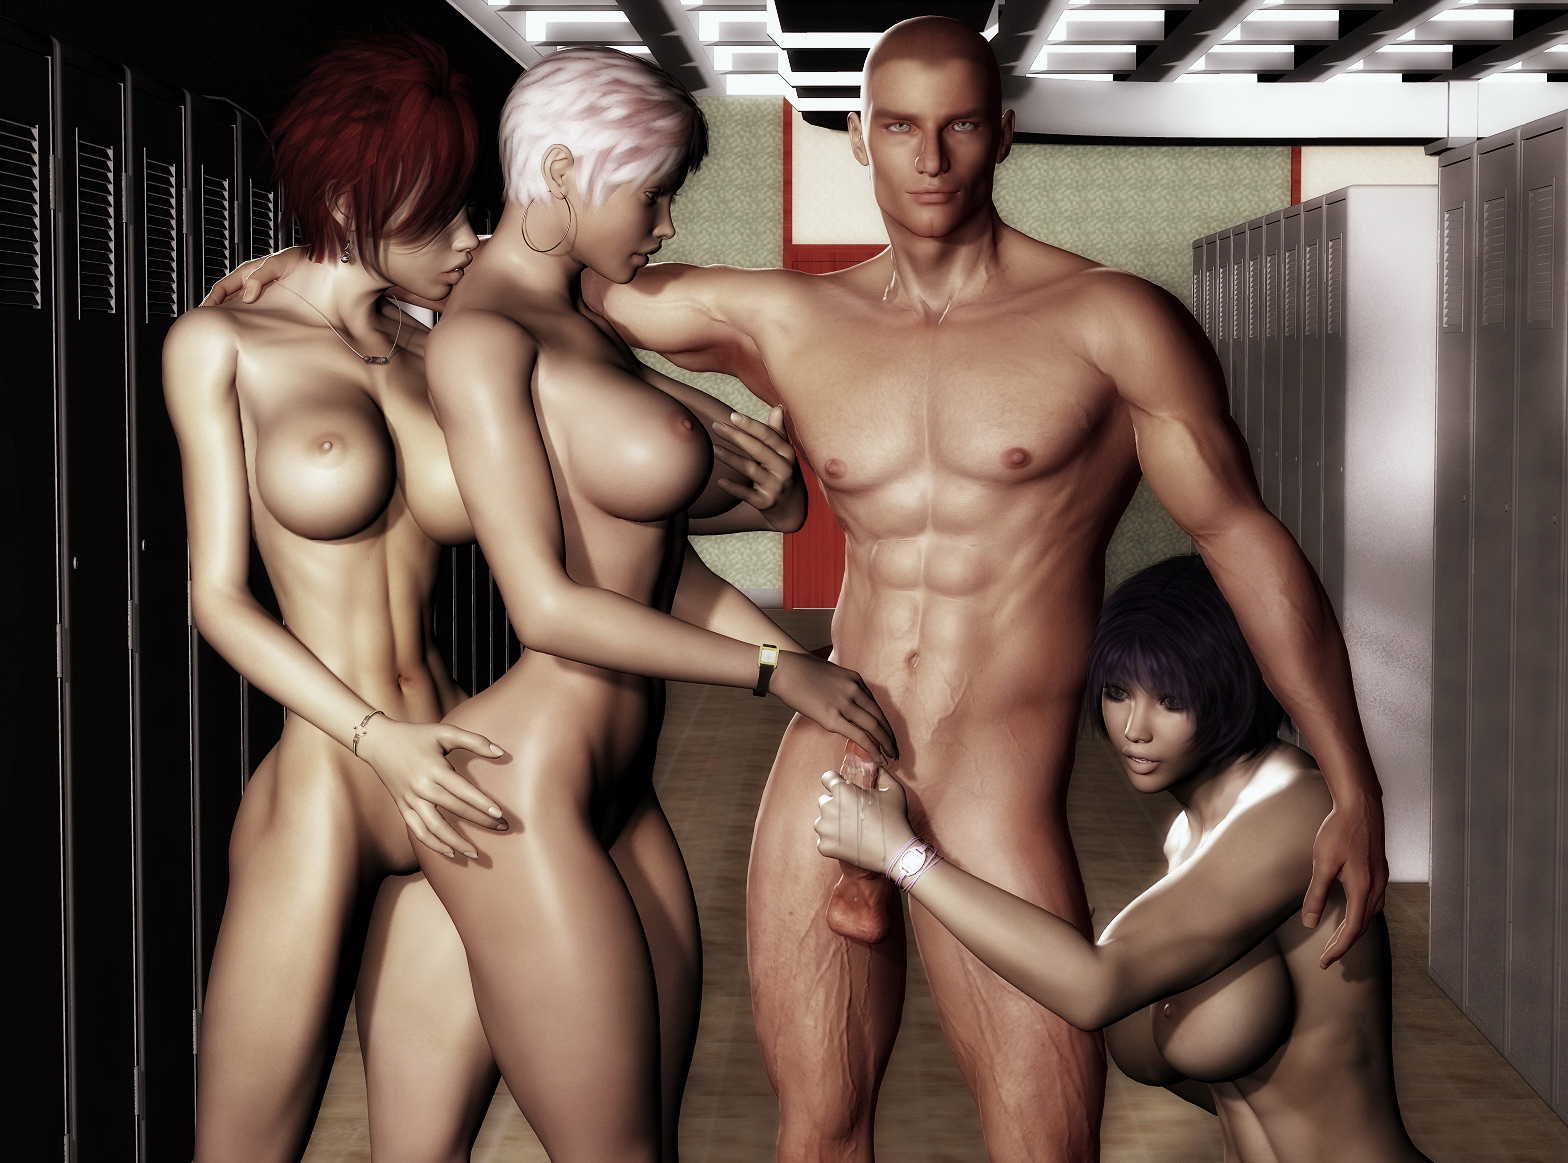 Warrior woman 3d sex cartoon xxx pic